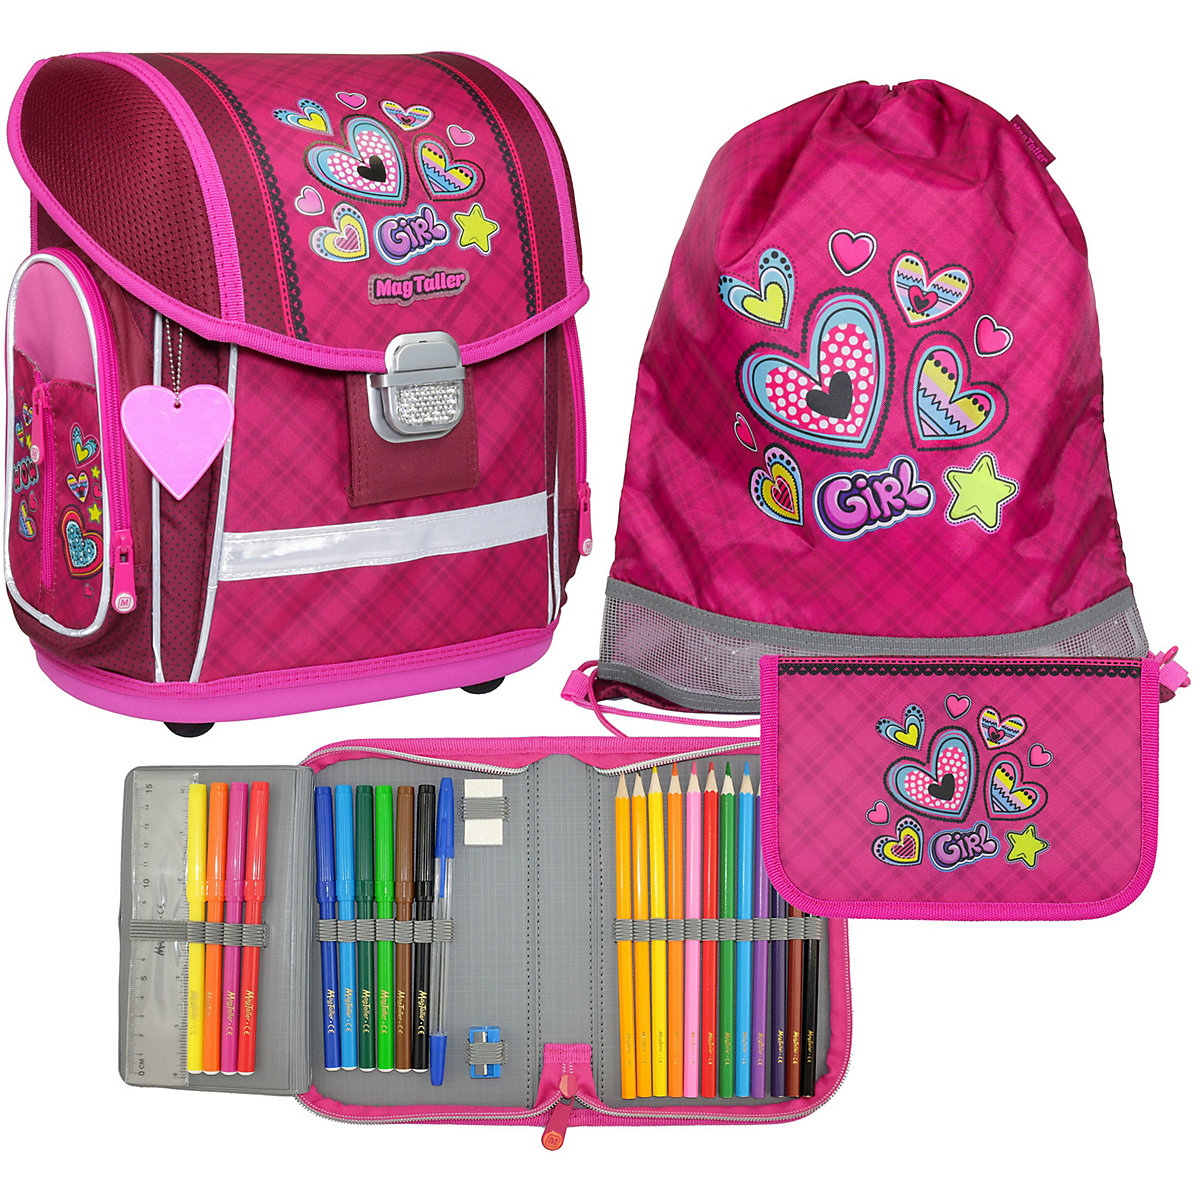 School Bags MAGTALLER 11154870 schoolbag backpack knapsacks orthopedic bag for boy and girl animals flower sprints стоимость